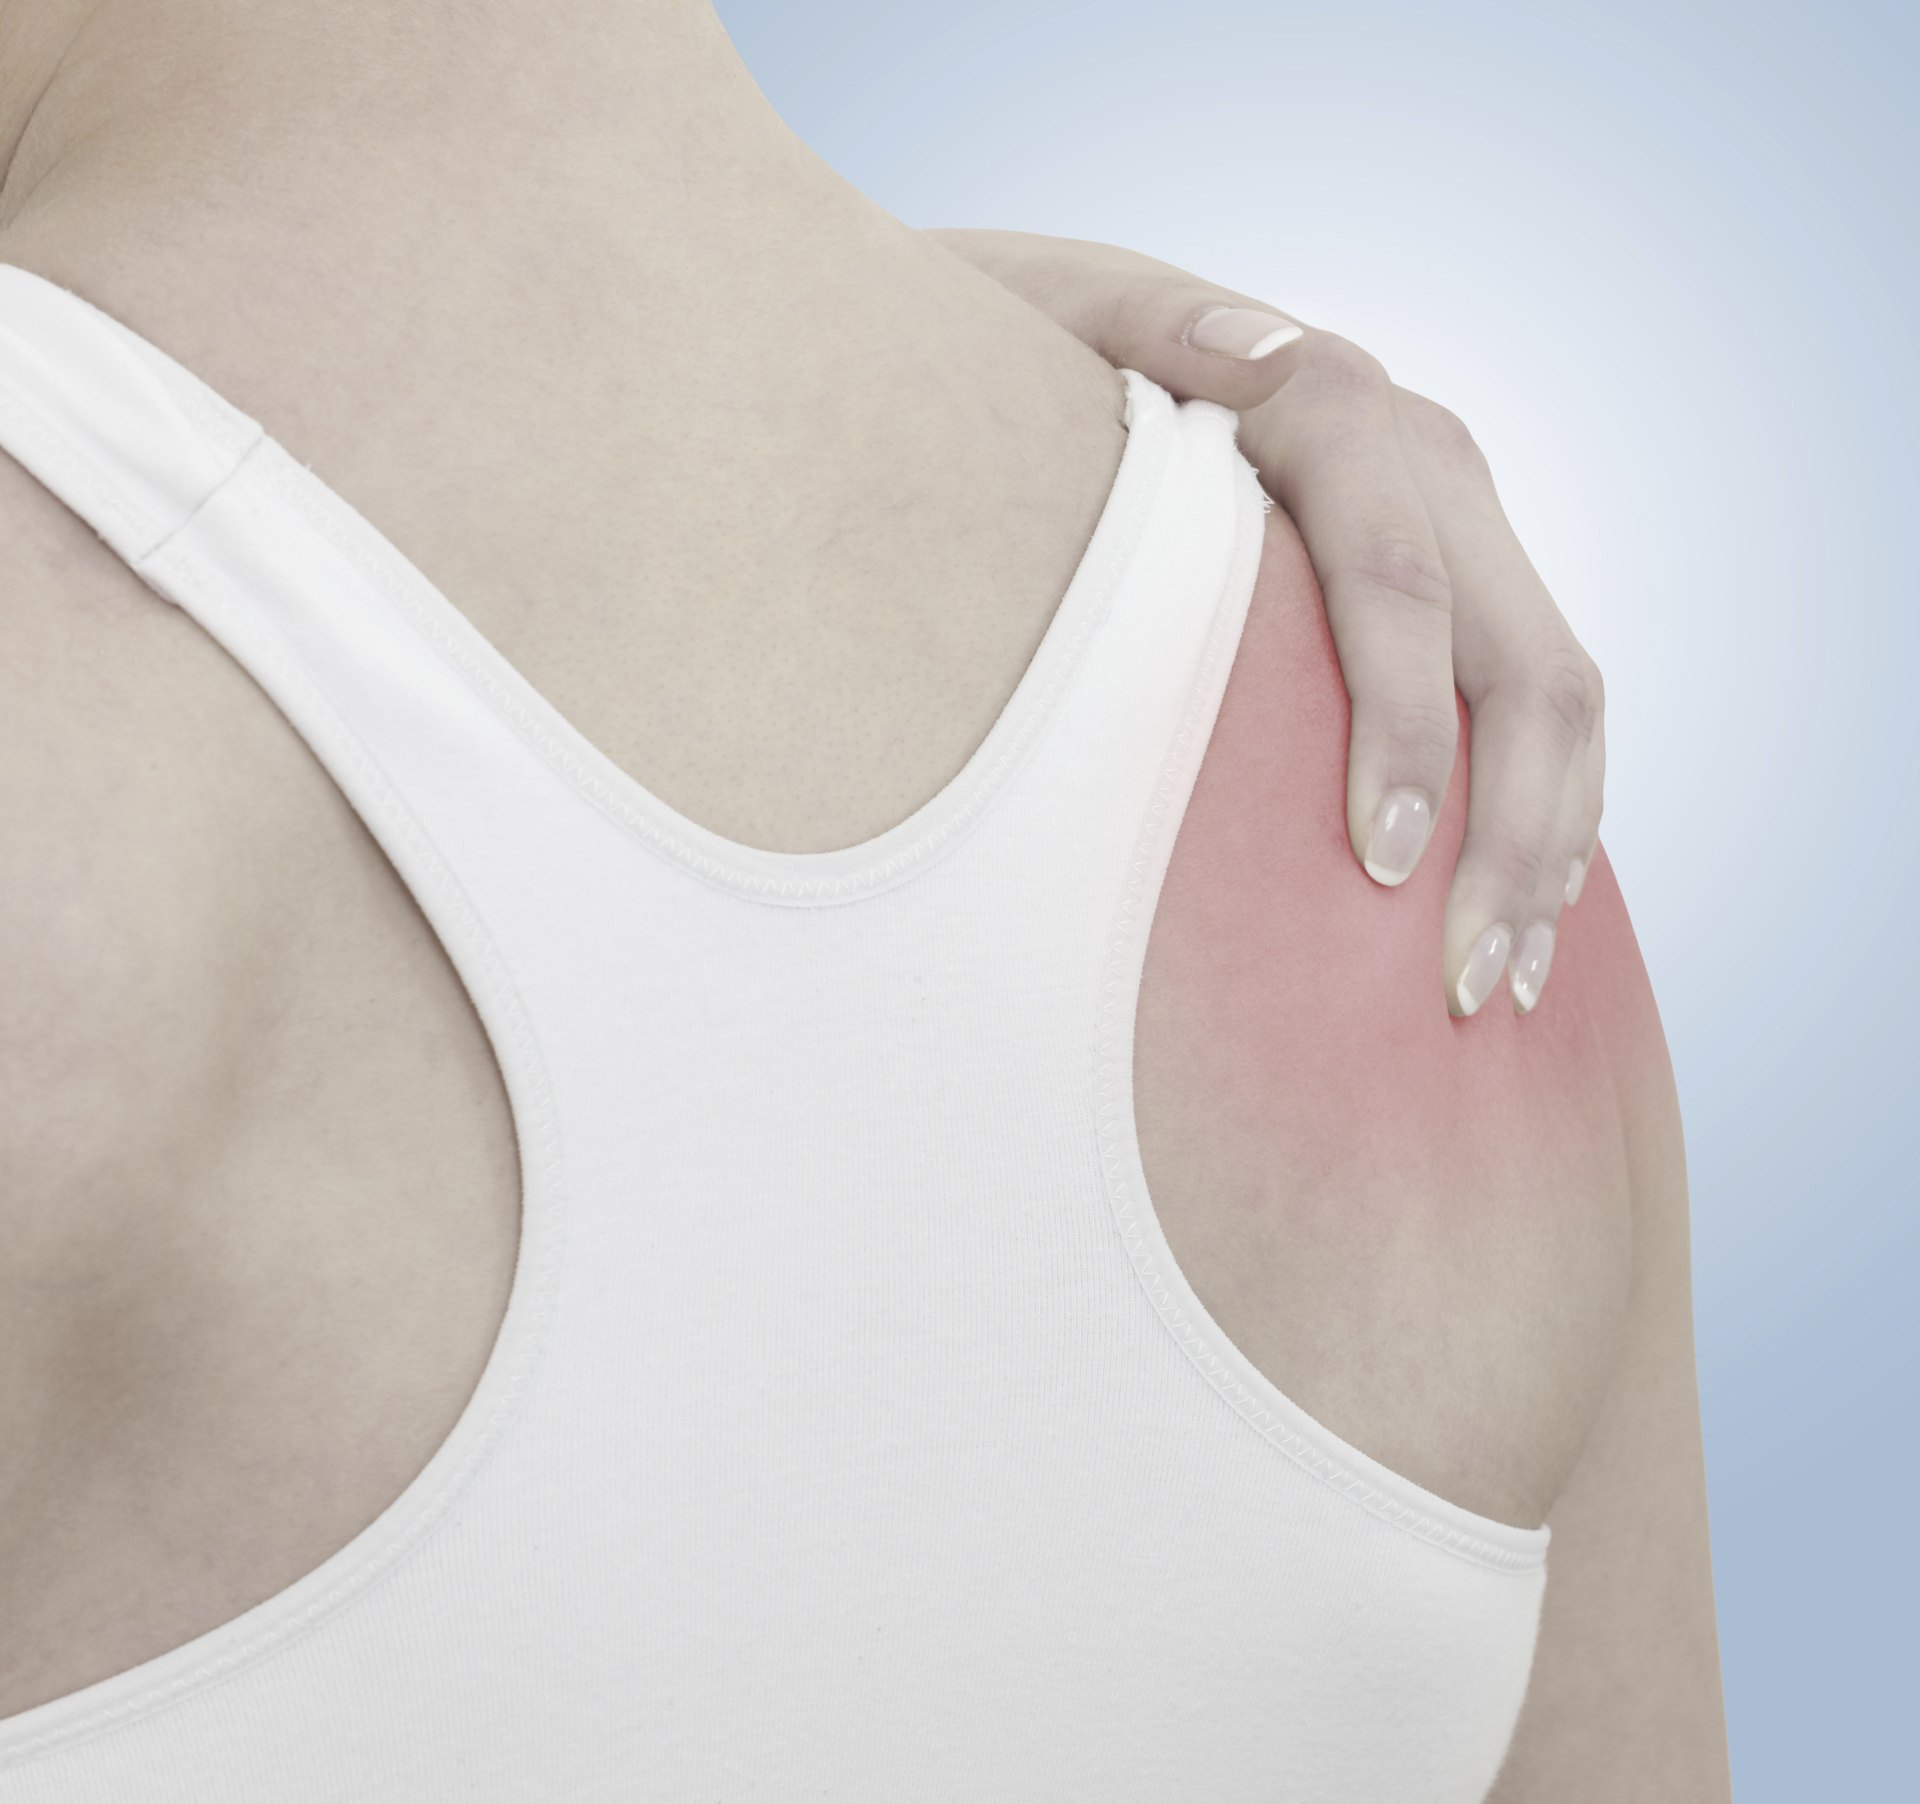 Conditions That Cause Frozen Shoulder | LIVESTRONG.COM